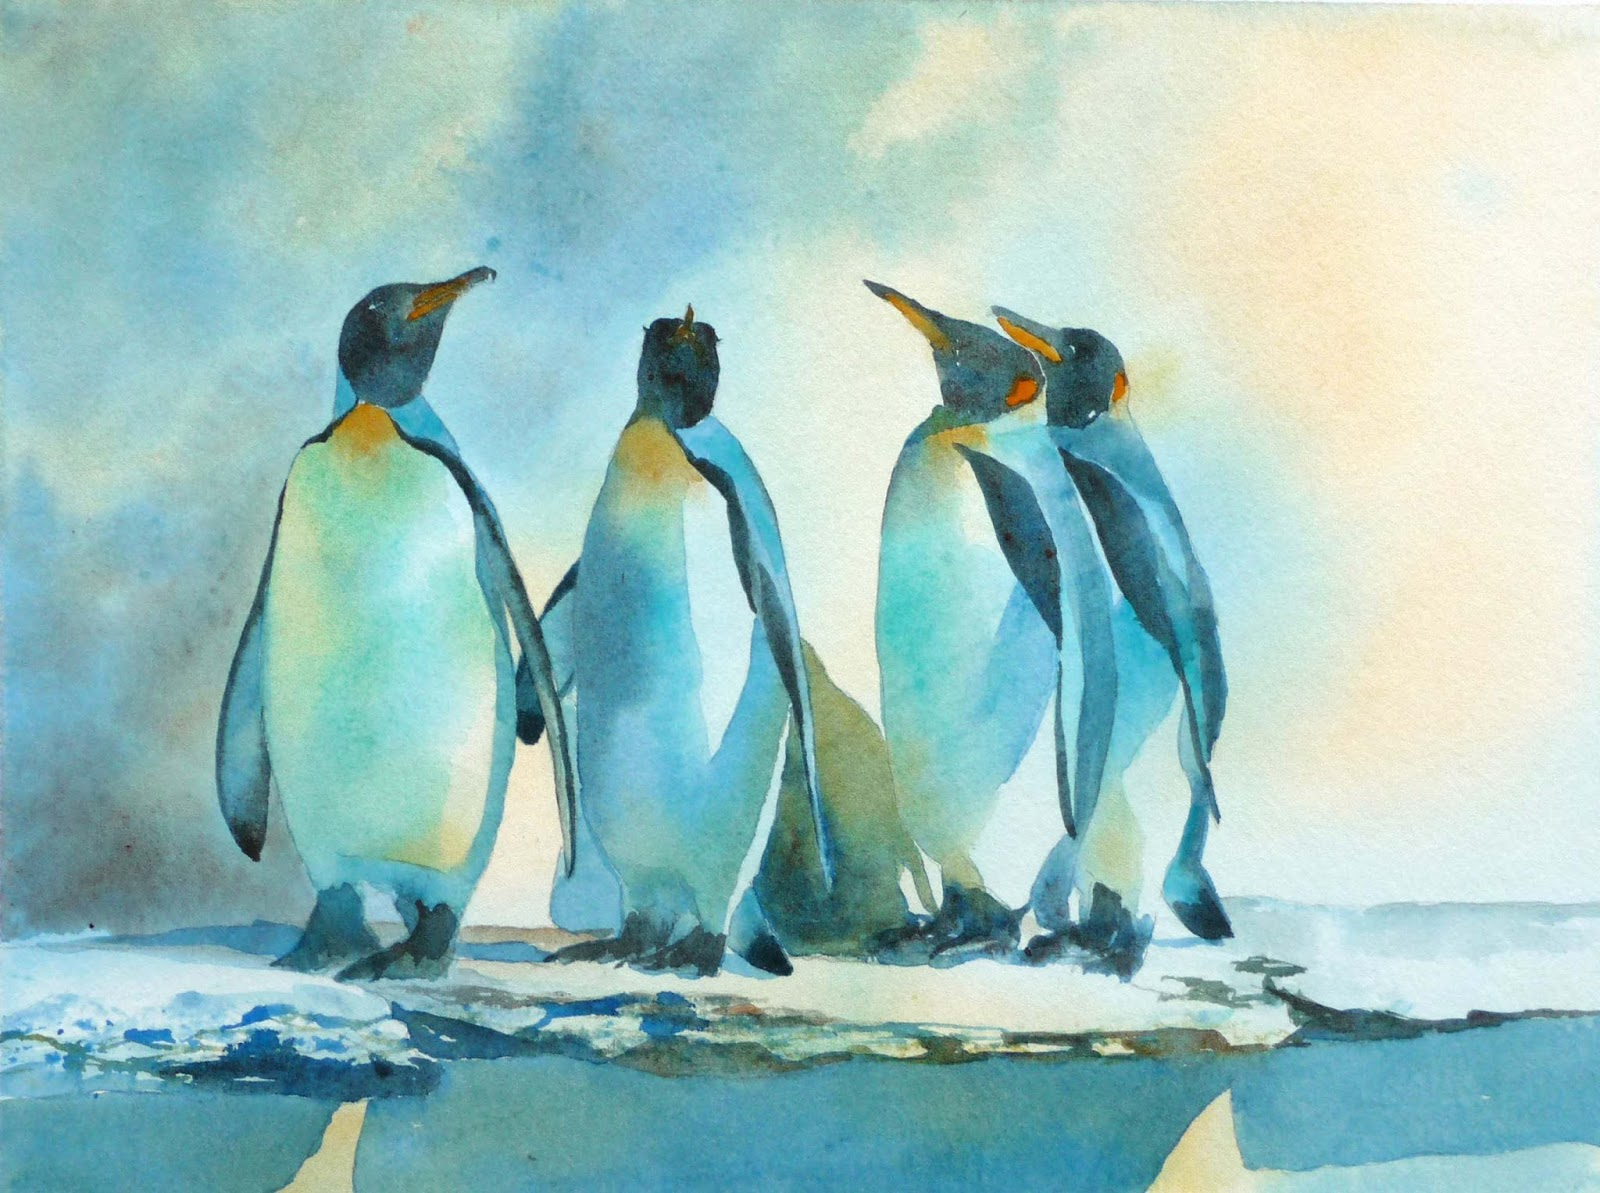 Fiona peart as i was saying watercolour washes demo for Watercolor painting ideas beginners